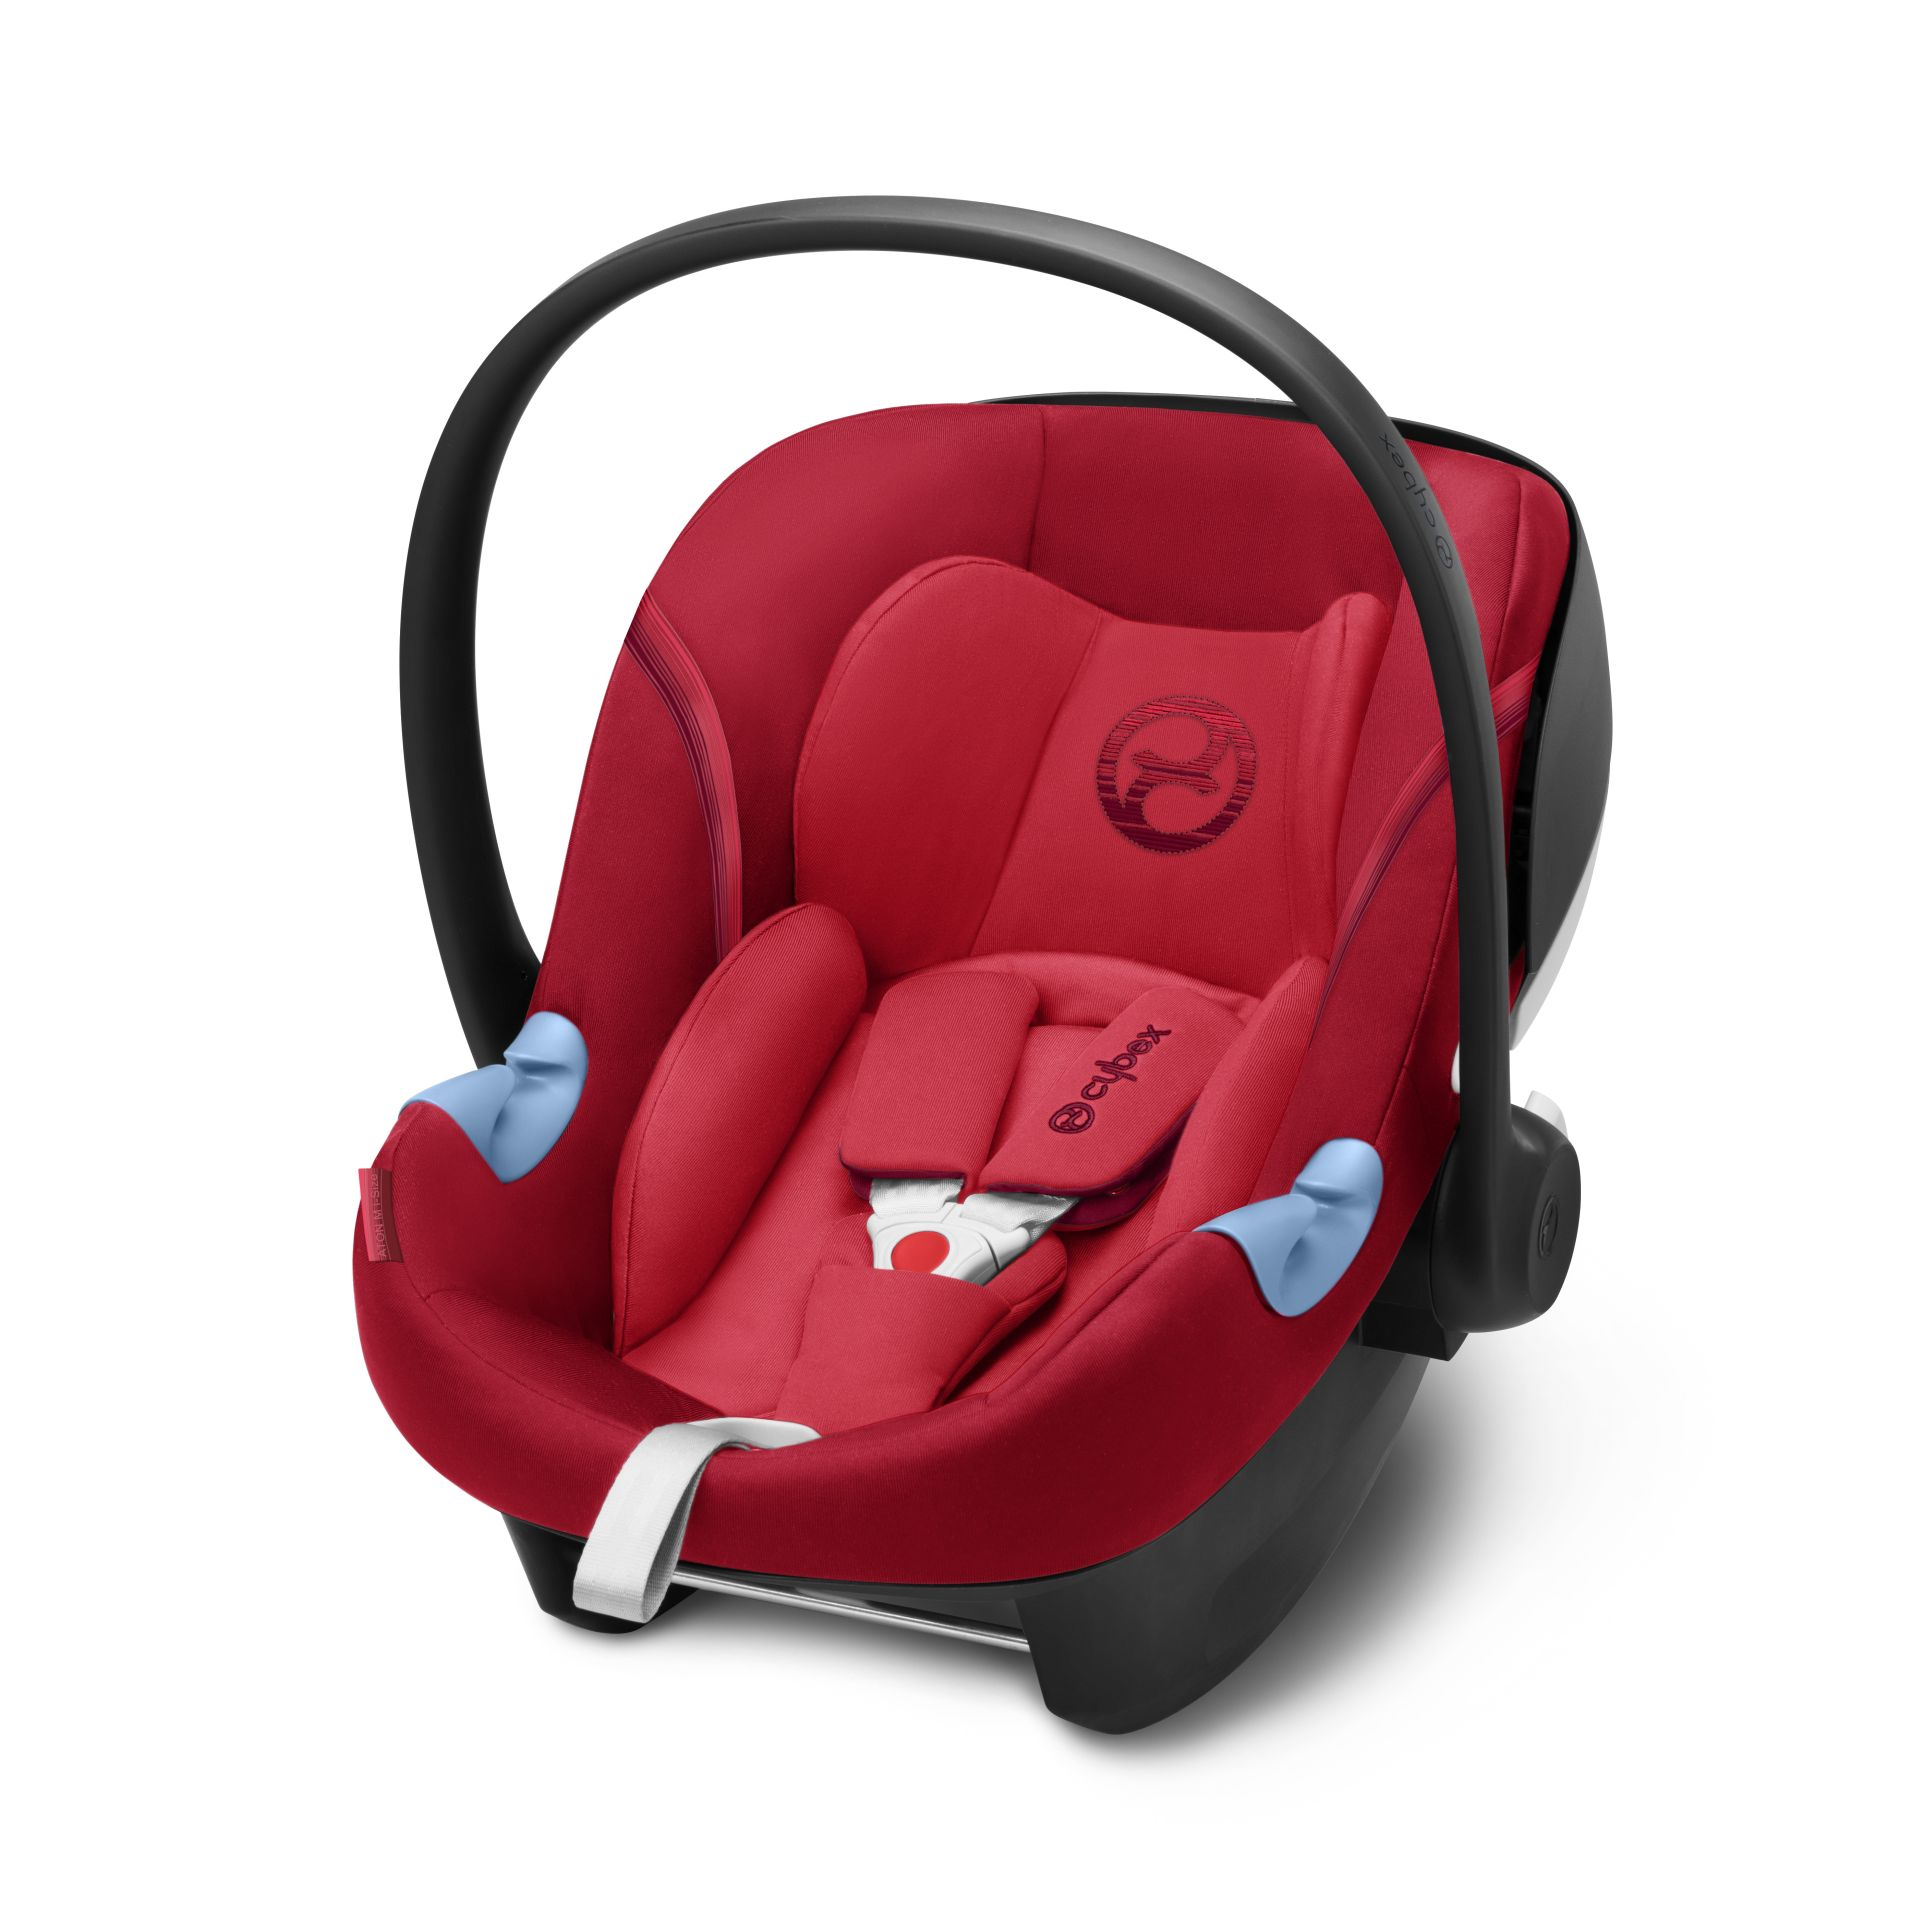 cybex infant car seat aton m i size 2018 rebel red red. Black Bedroom Furniture Sets. Home Design Ideas